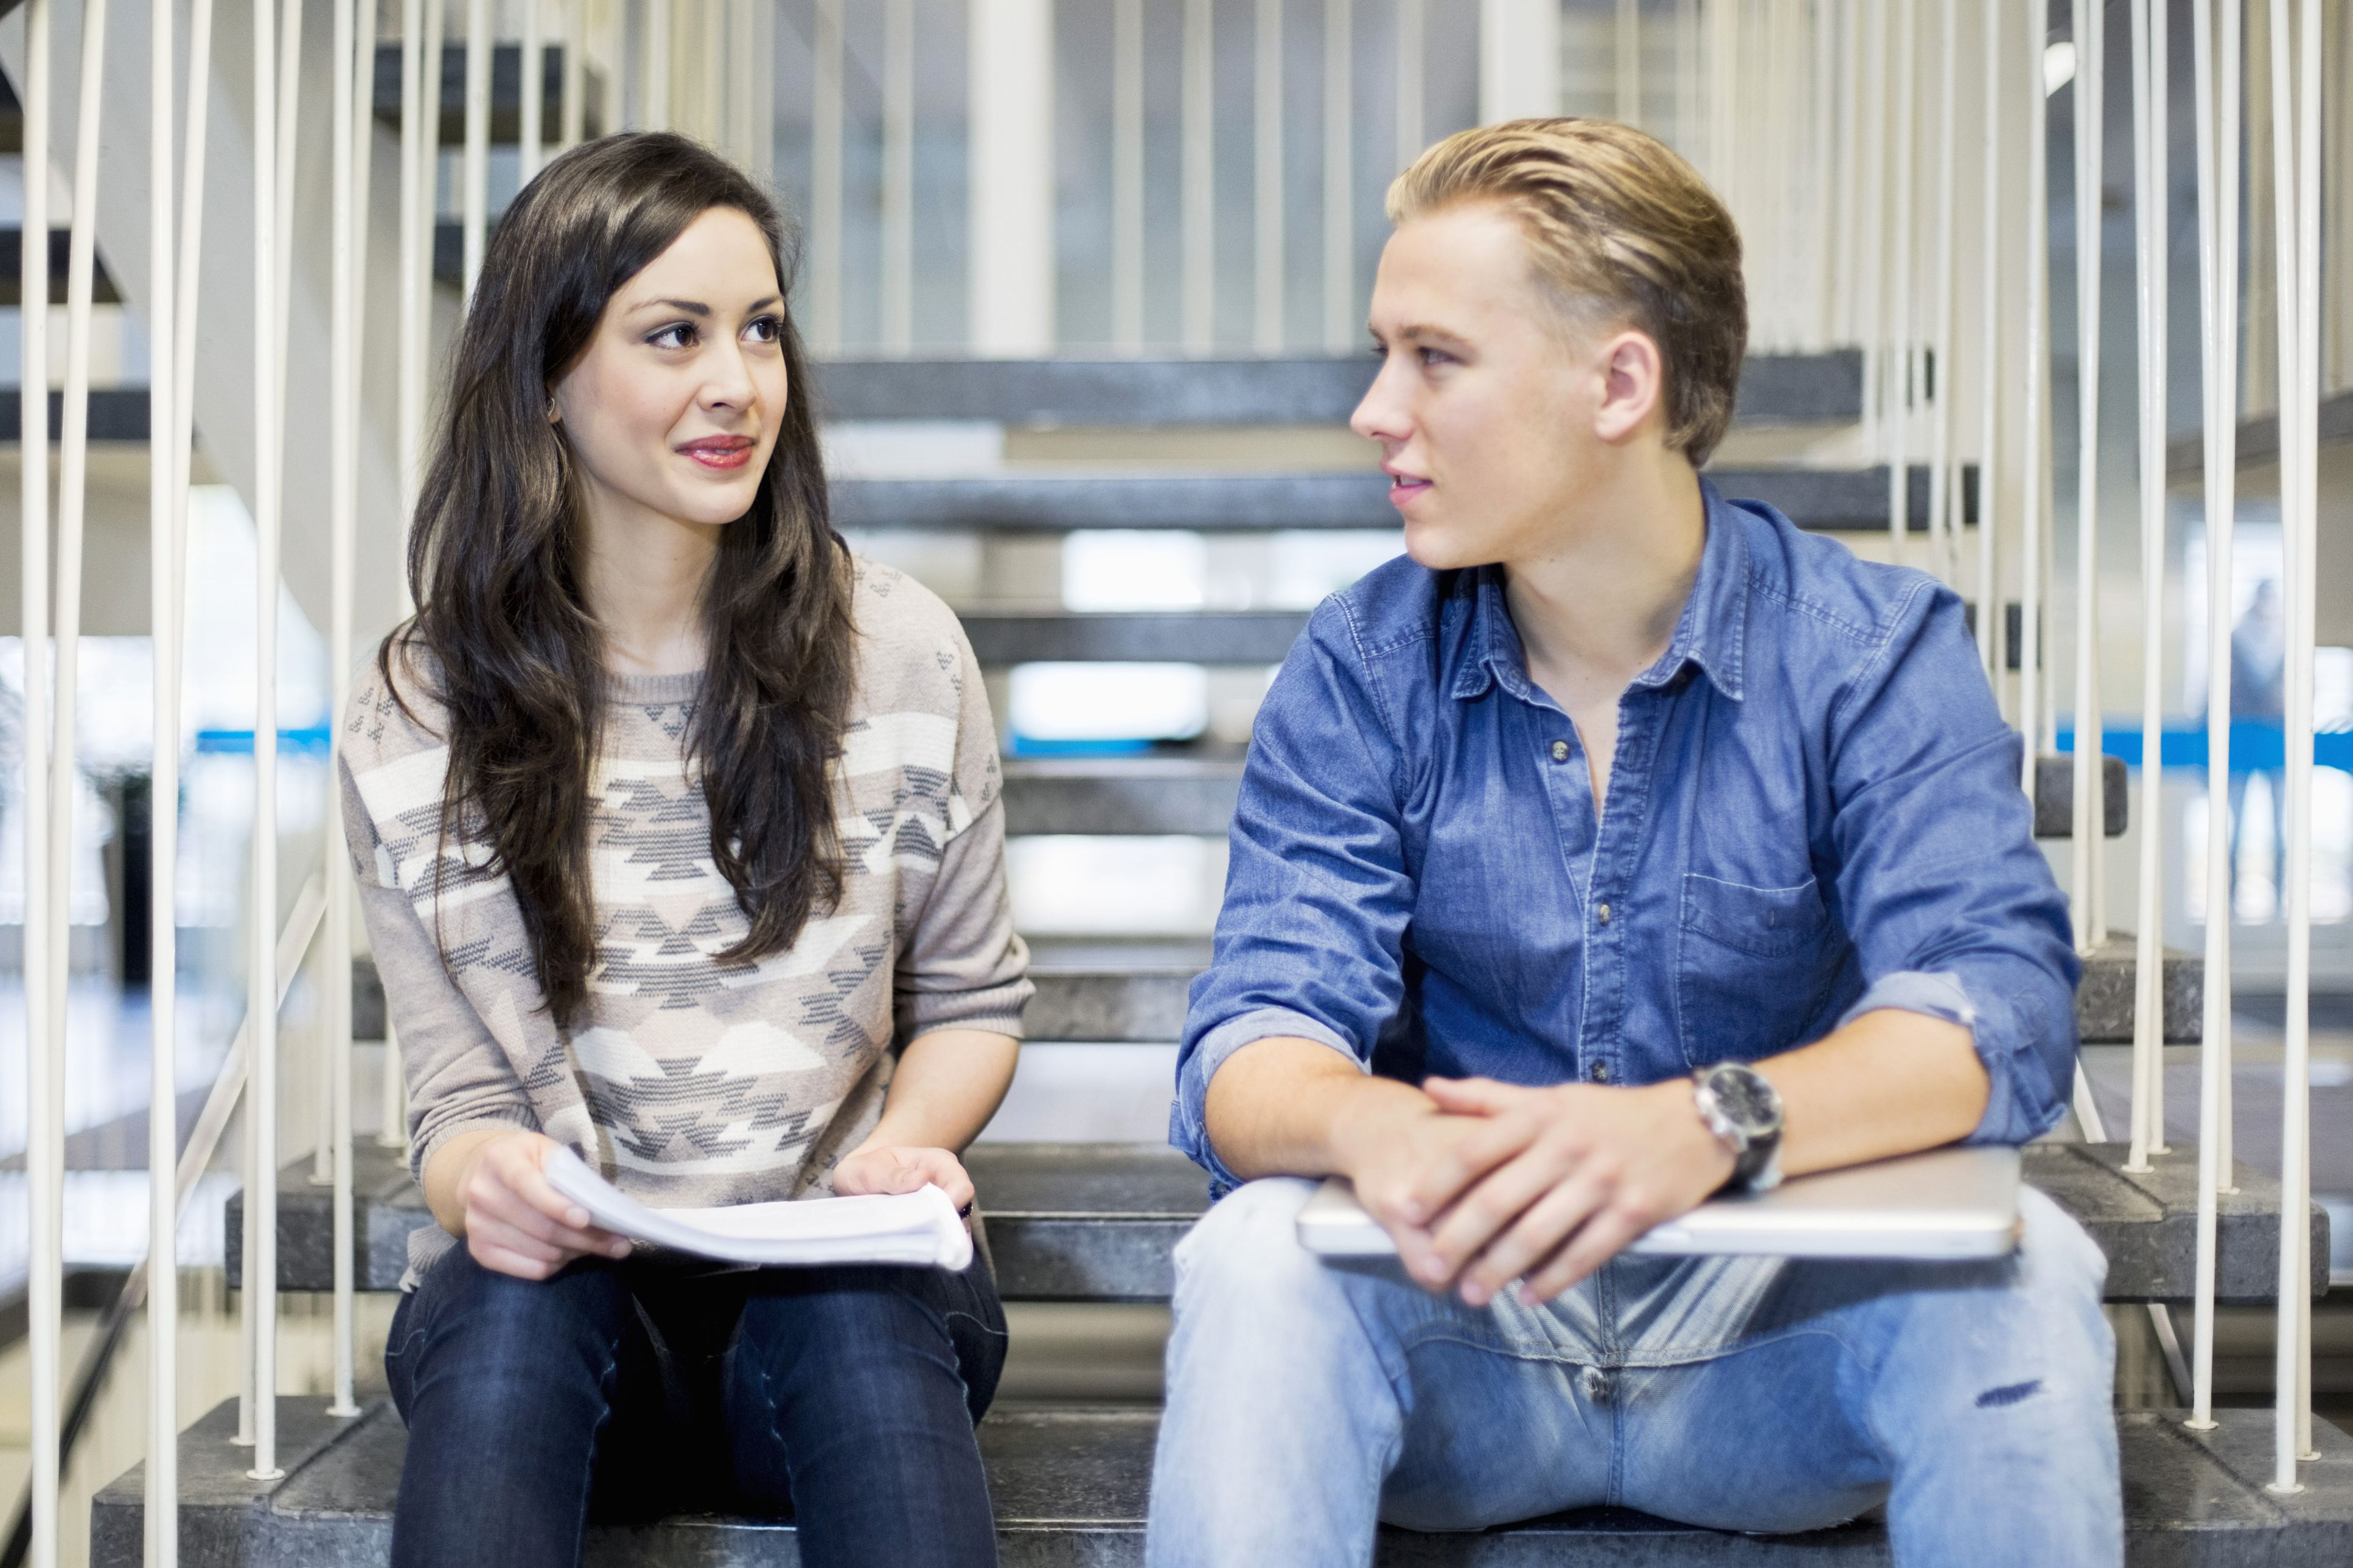 College aged man and woman sitting on school steps talking